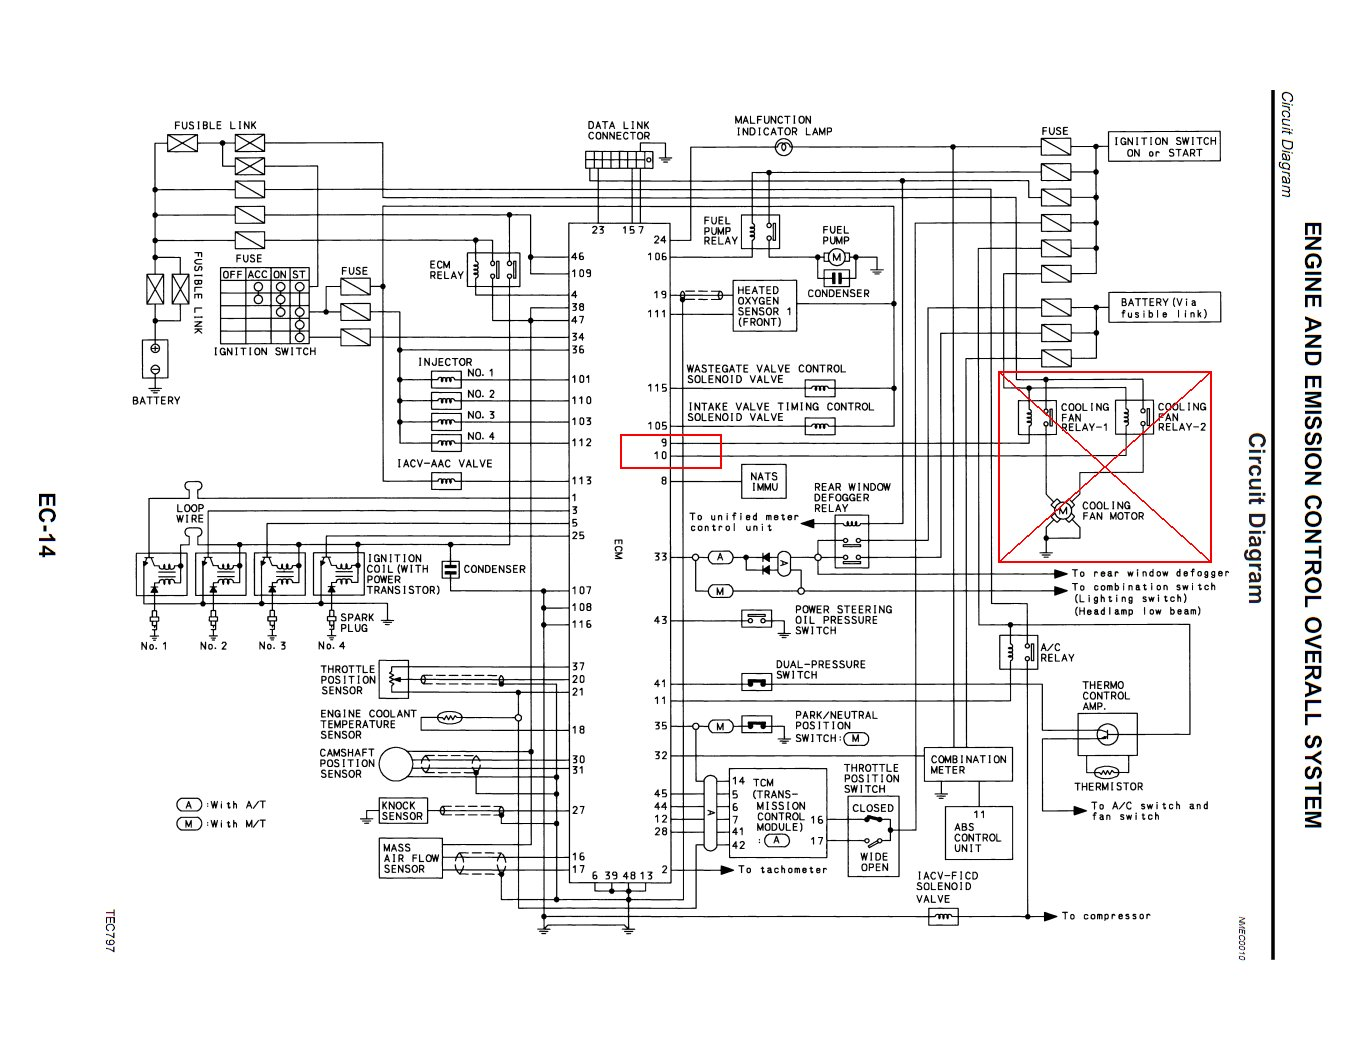 Related with citroen xsara central locking wiring diagram